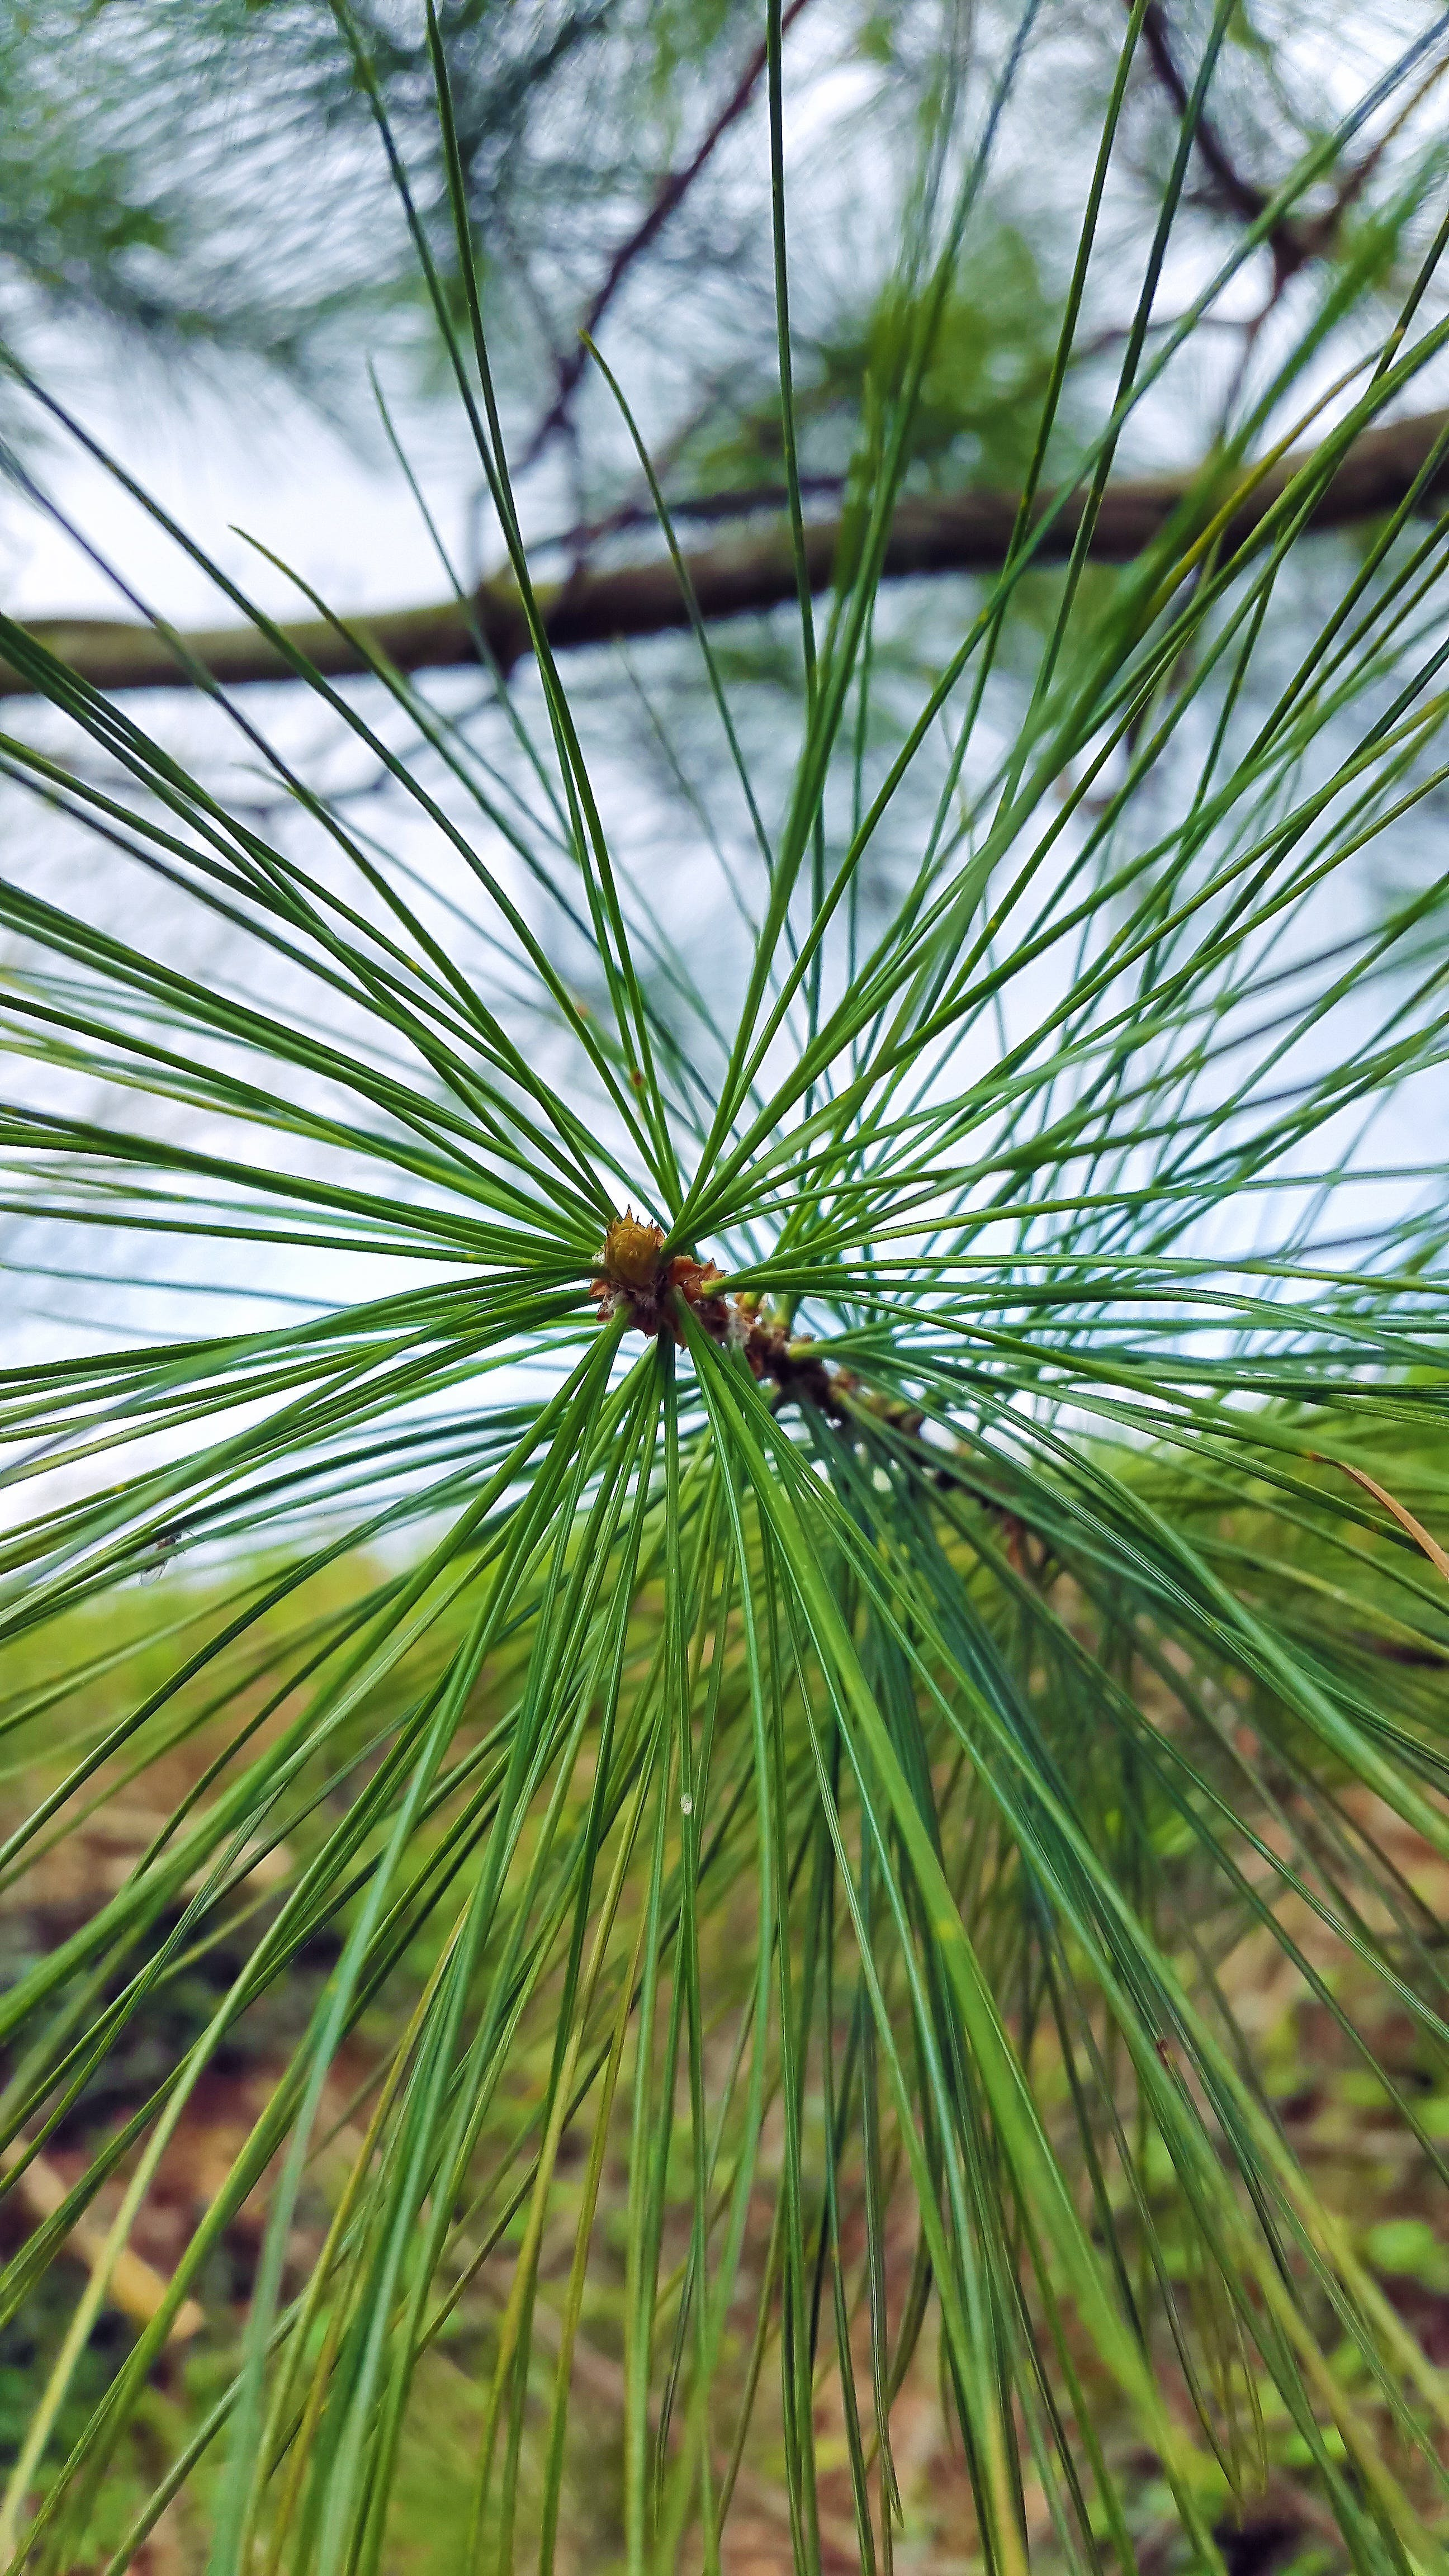 of branch, close, conifer, end